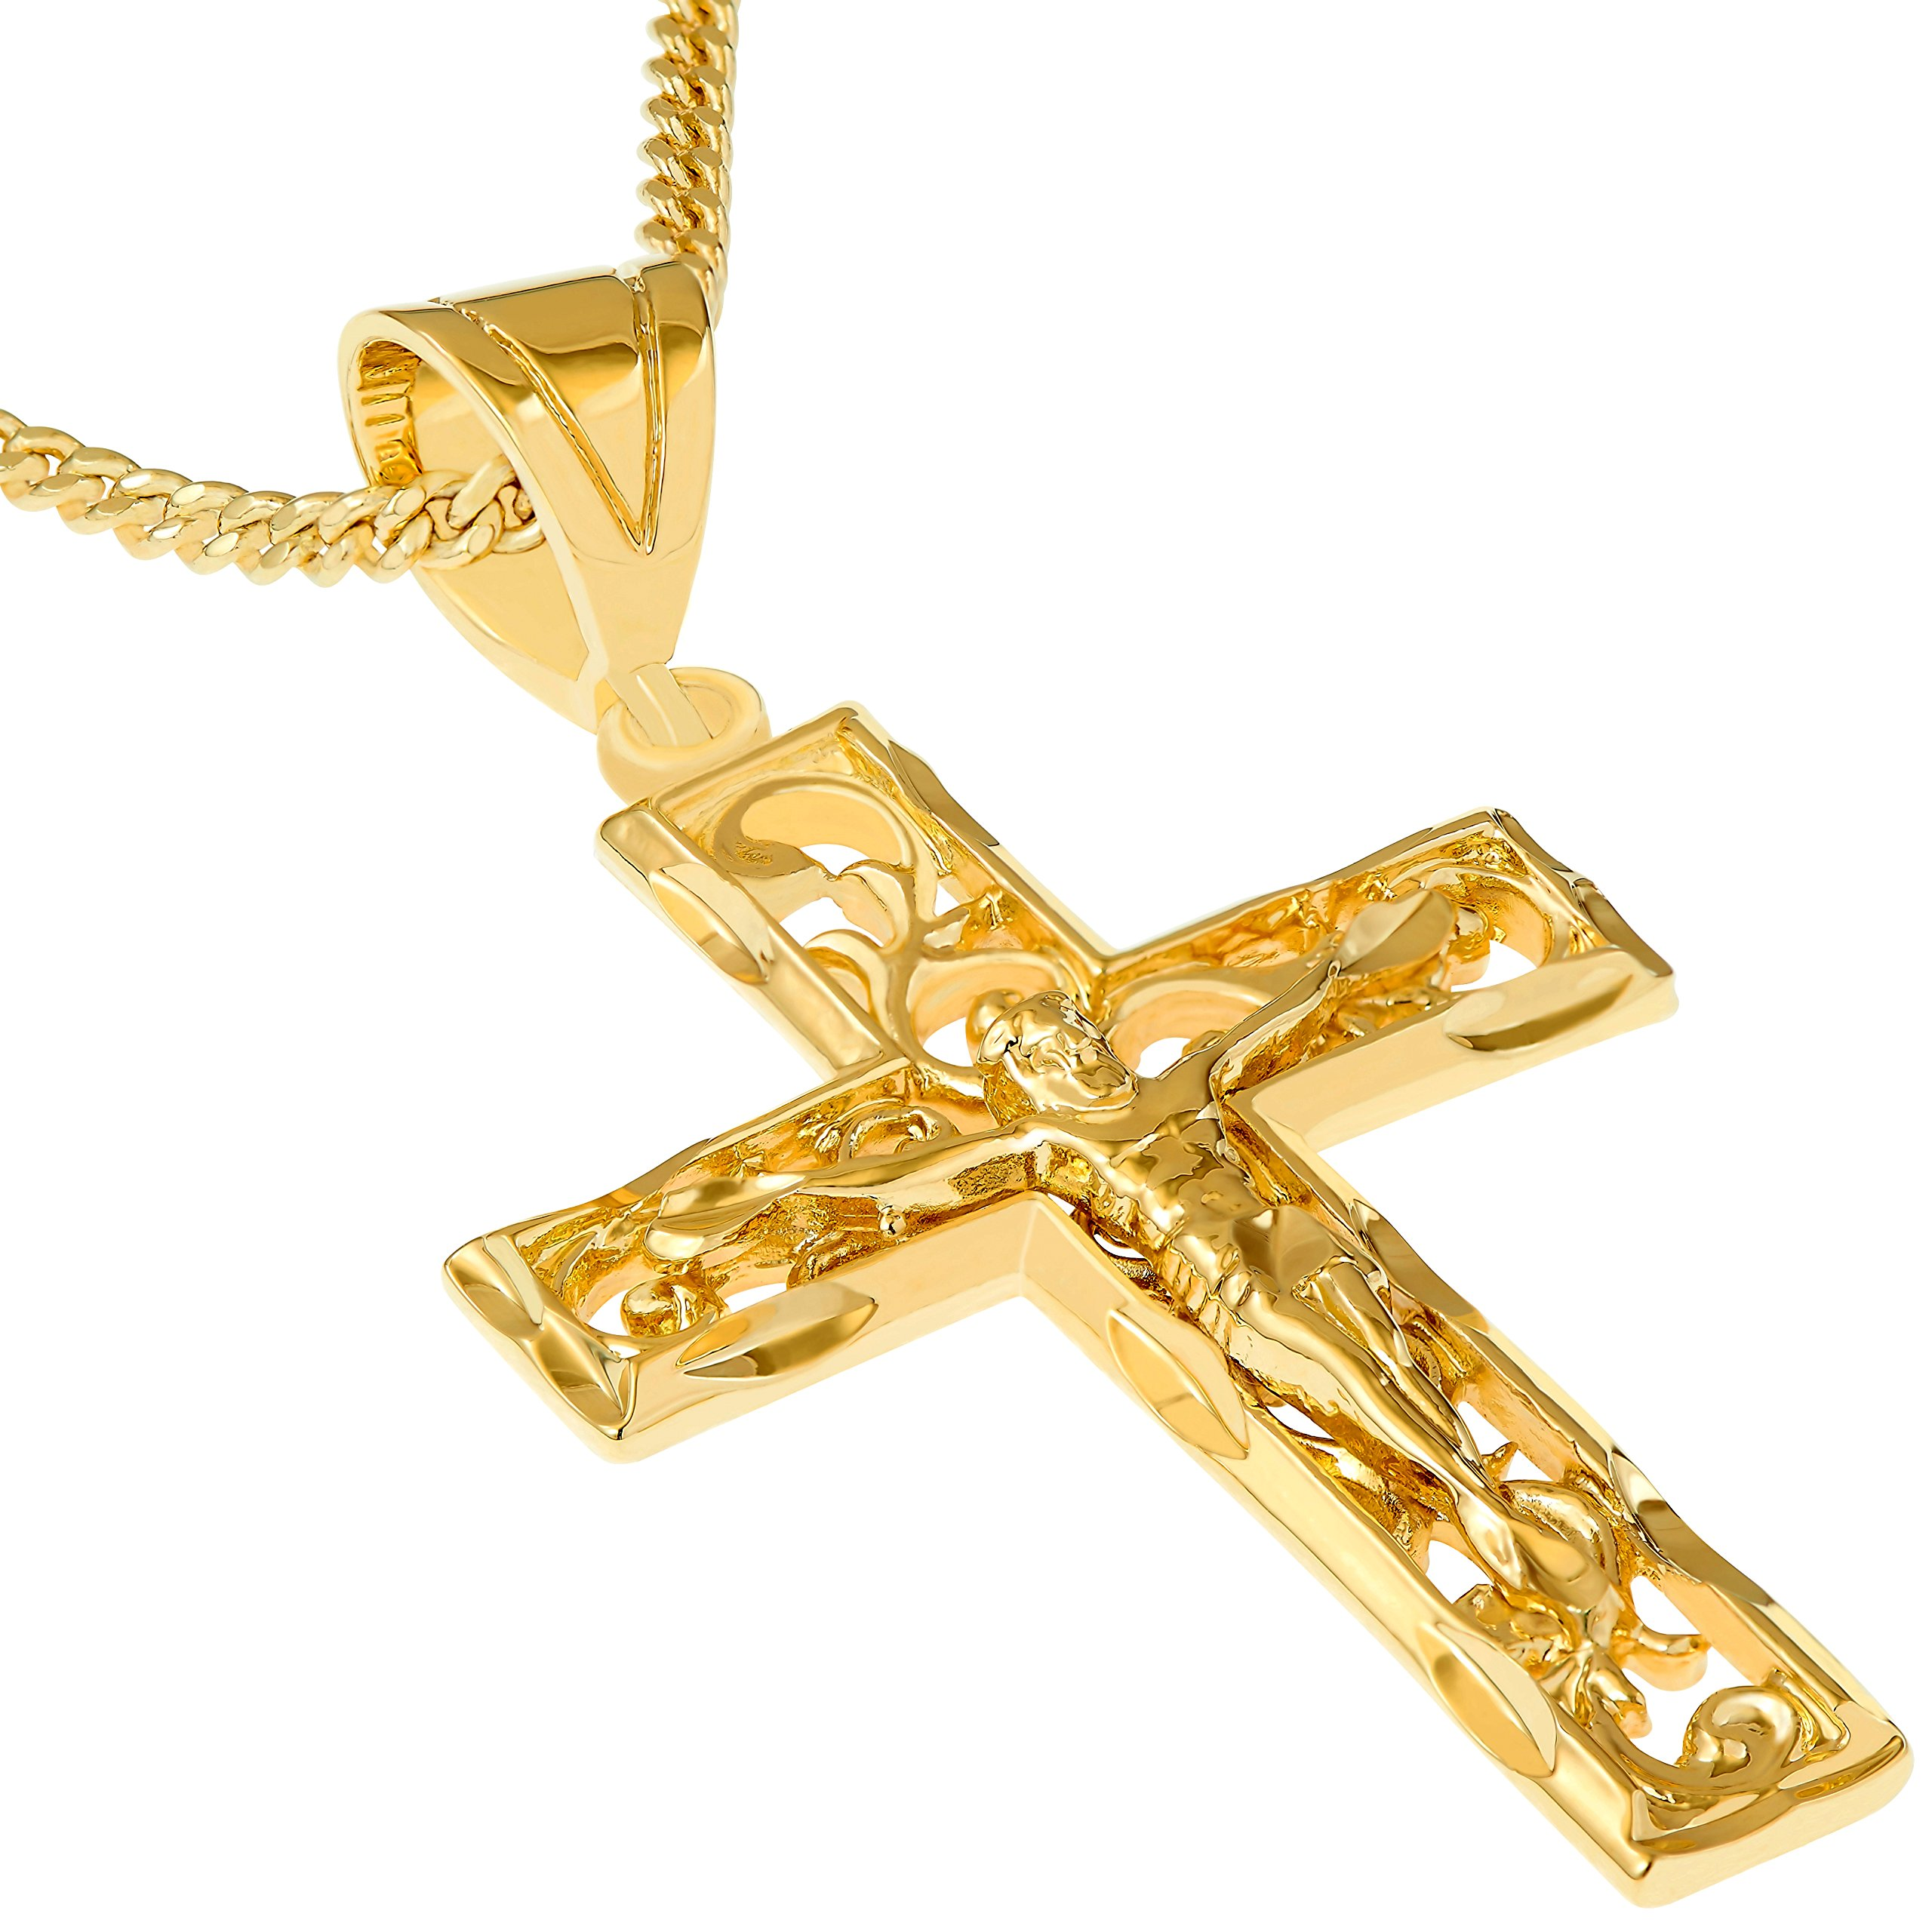 Lifetime Jewelry Crucifix Necklace Filigree Cross Pendant 24K Gold Plated Comes with 20'' Chain Extra Large (1 3/8'' W x 2'' H)